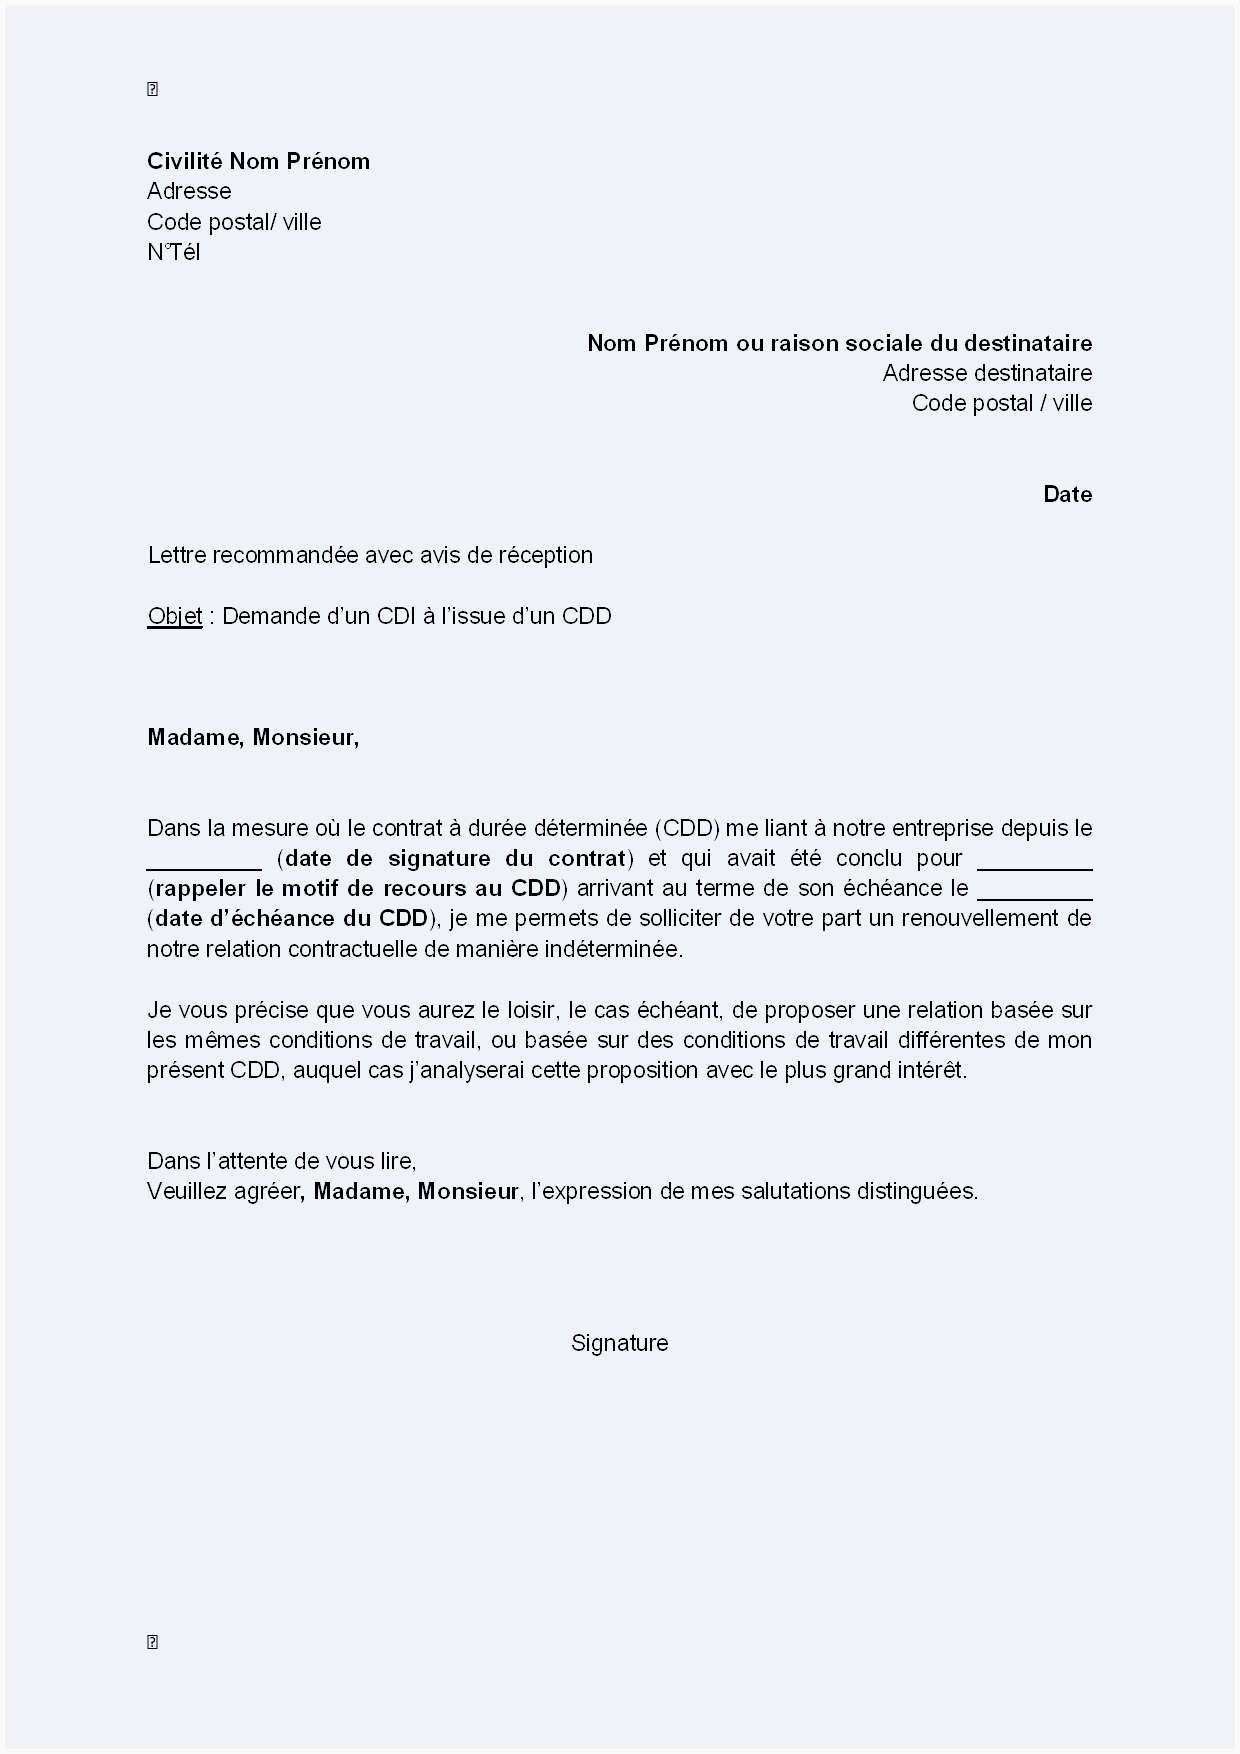 Lettre De Contestation D Amende Modele Lettre Contestation Amende Exemple De Reclamation Modele De